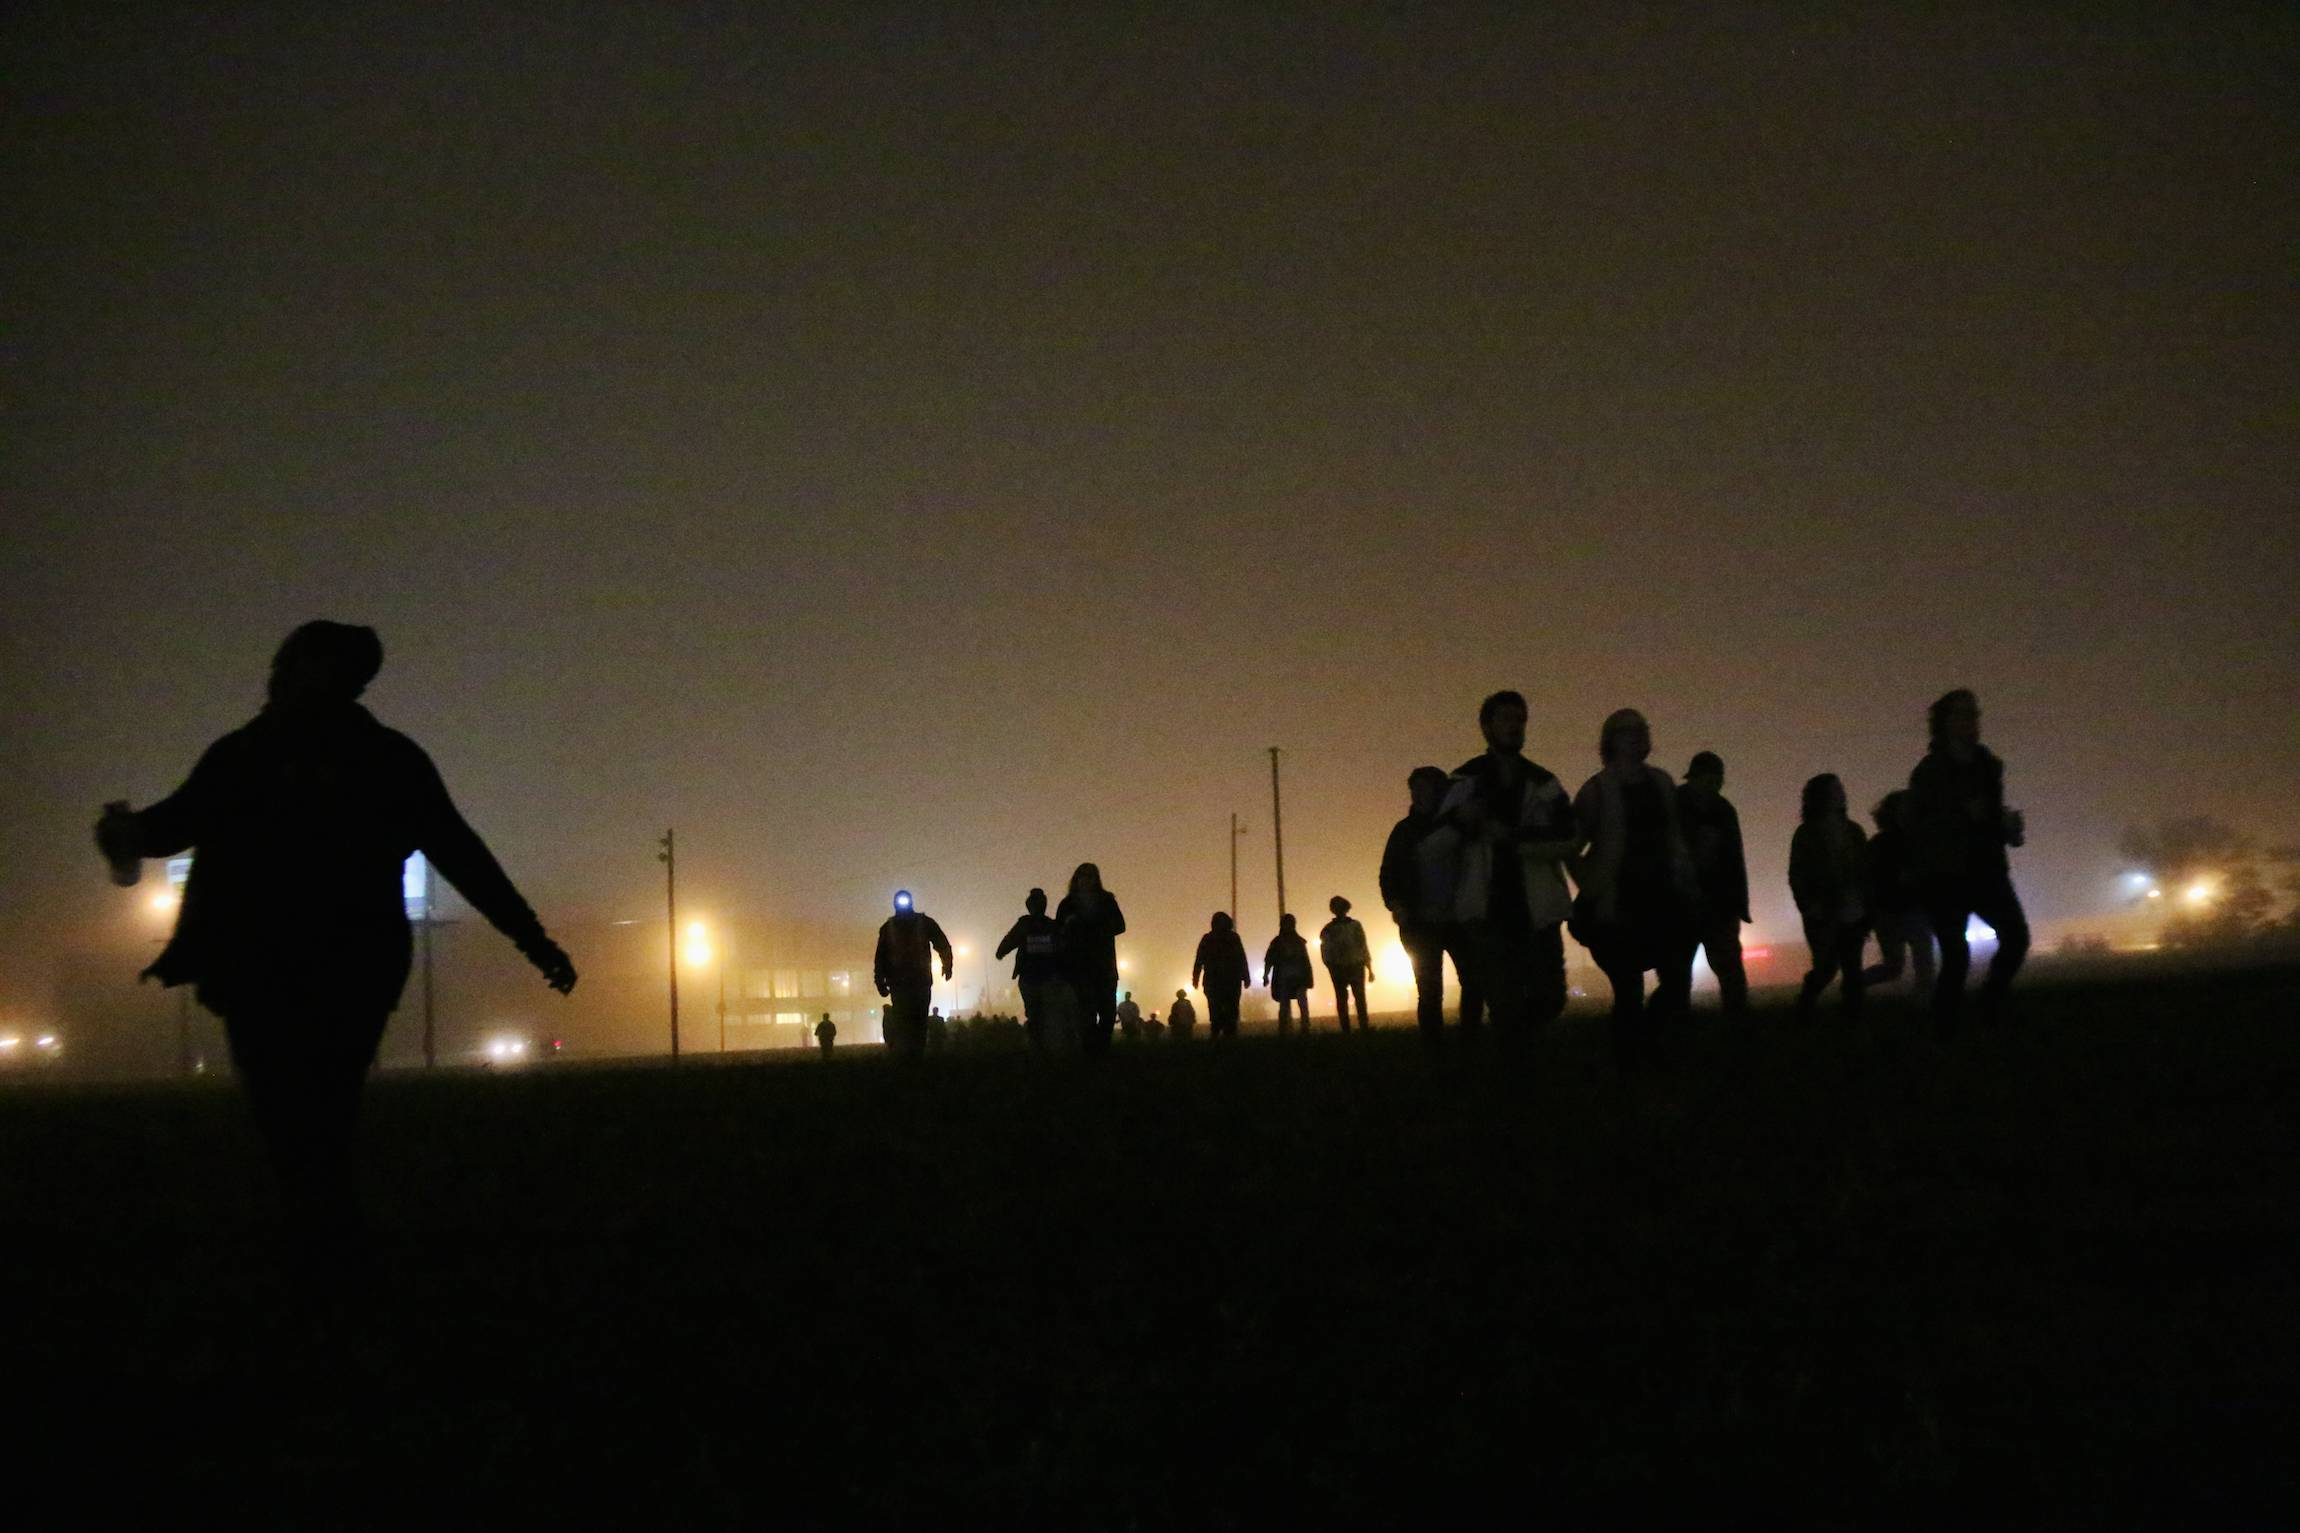 Protesters run across a field in St. Louis, in the early hours of Monday, Oct. 13, 2014. The Sunday-night protest demanded justice for a series of police killings, including Michael Brown, shot by officer Darren Wilson in Ferguson, Aug. 9, 2014.